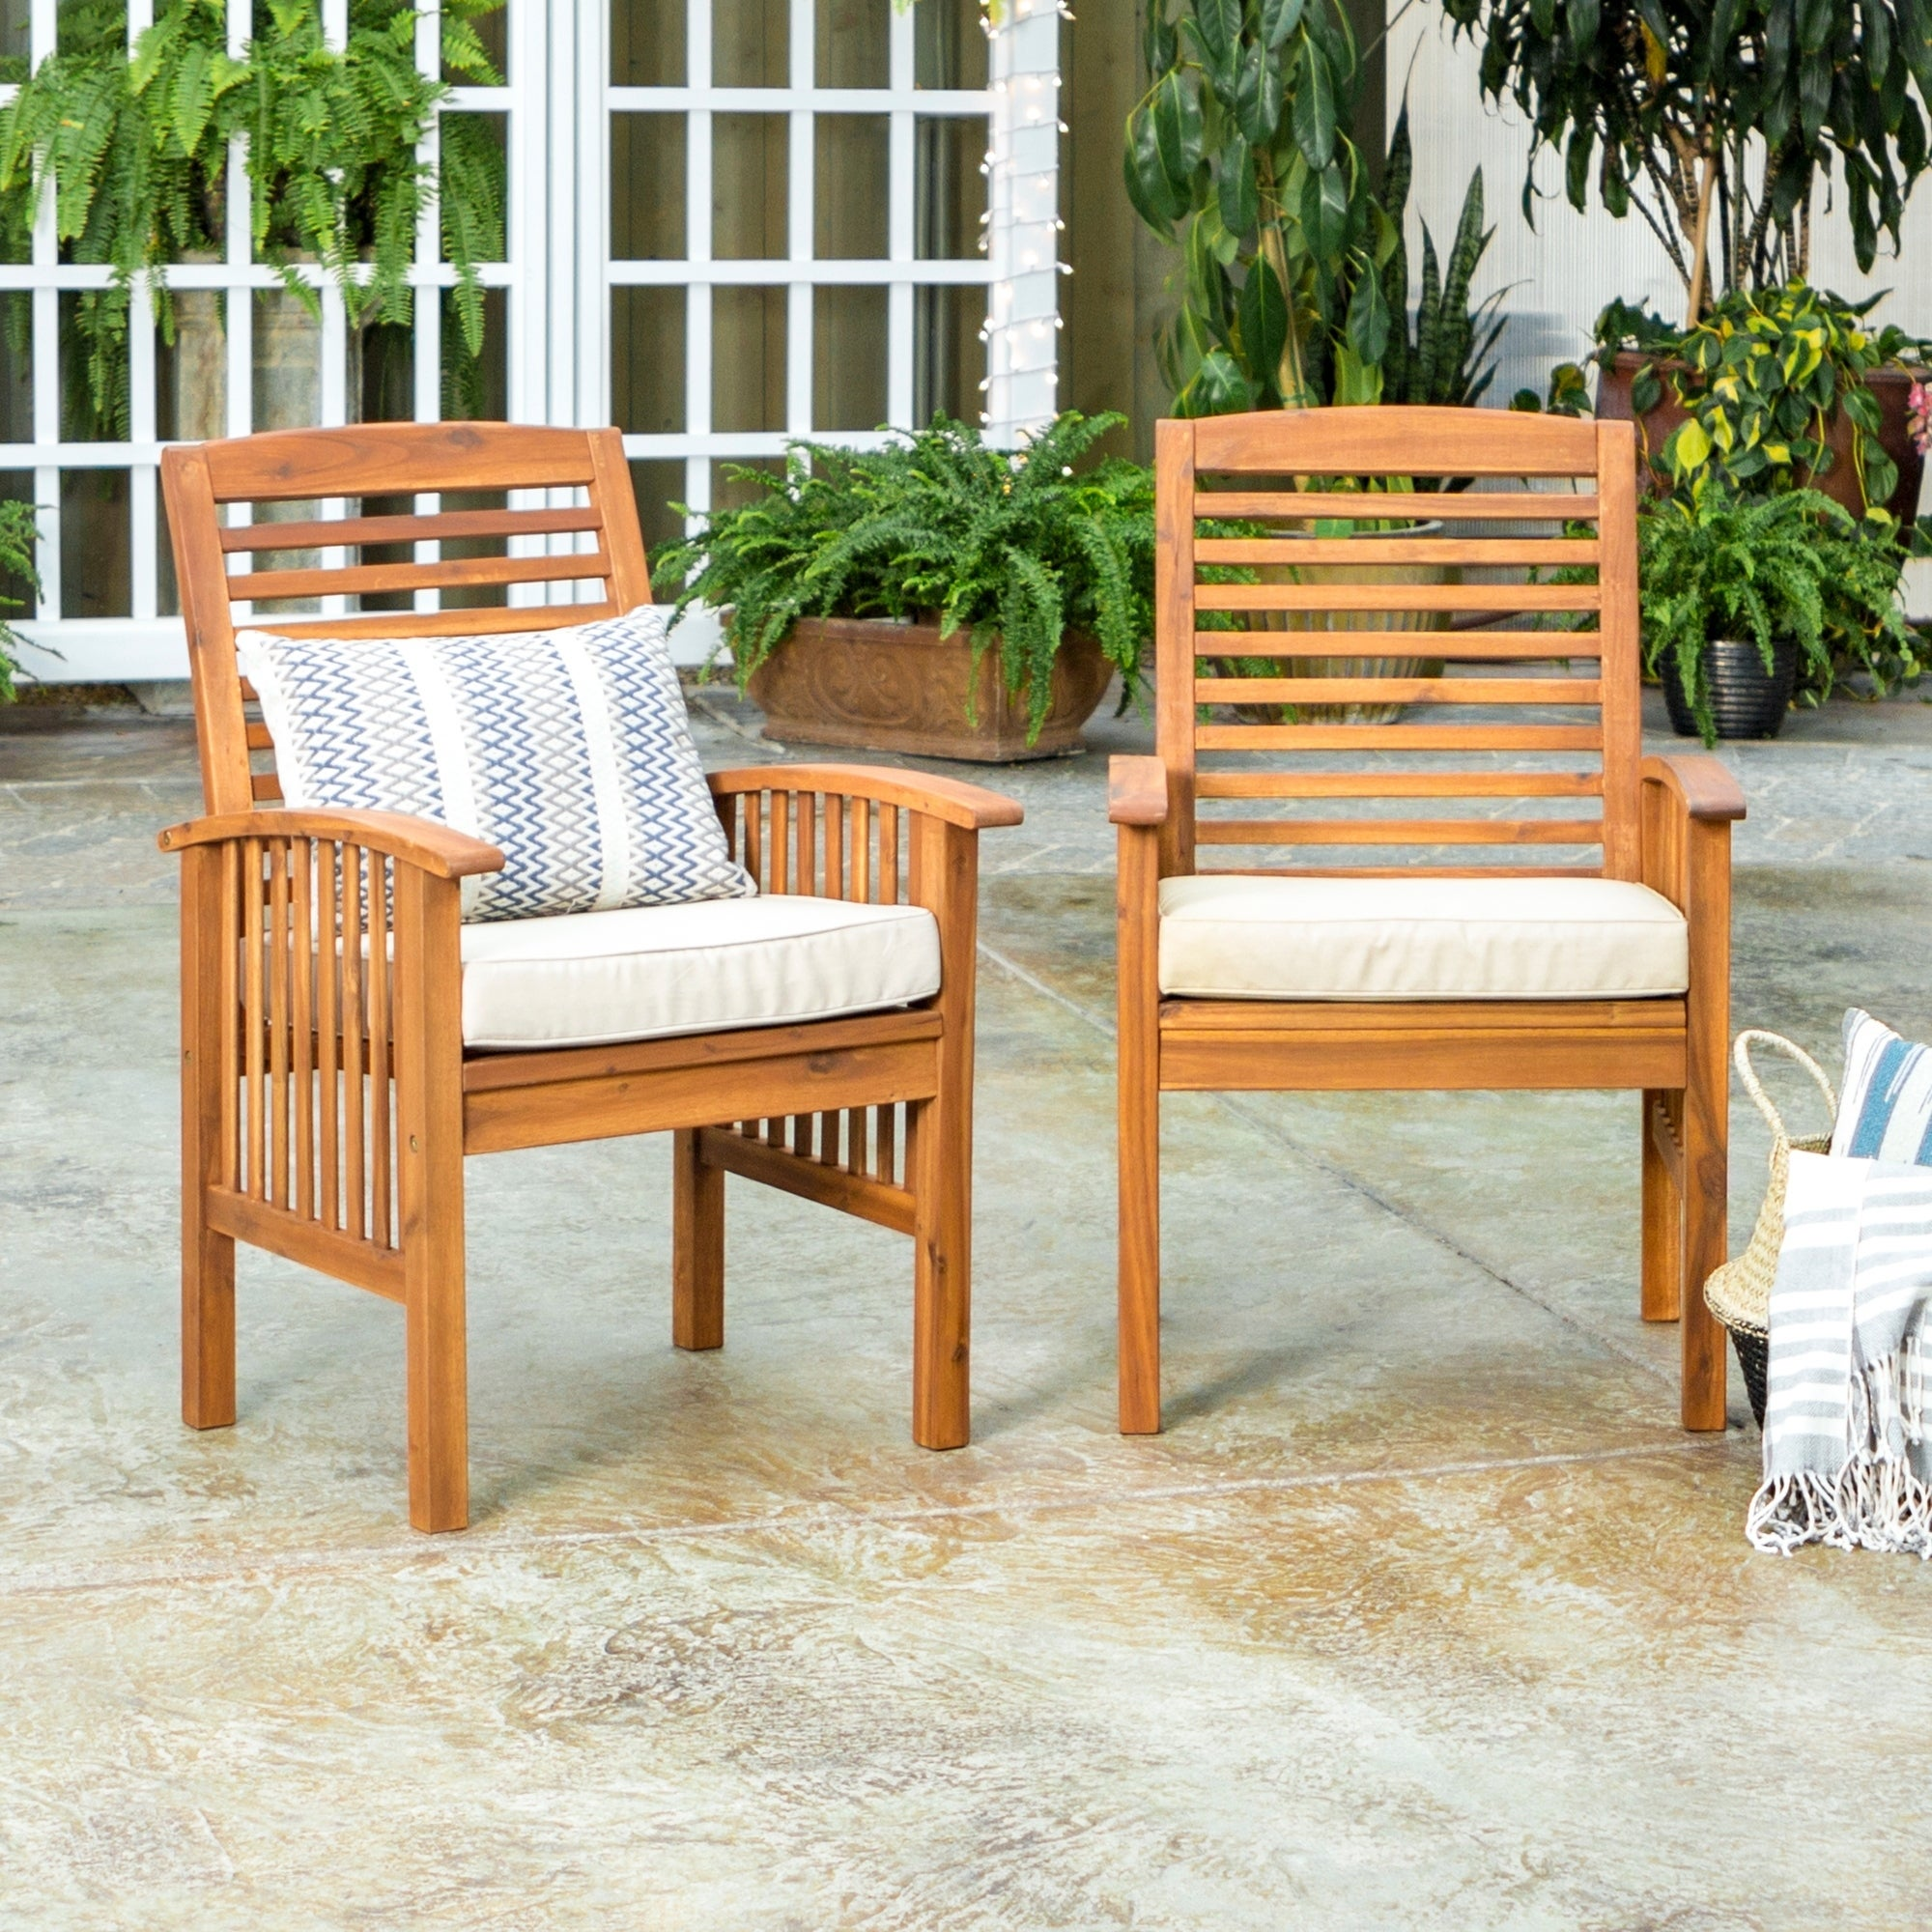 Shop Havenside Home Surfside Acacia Wood Patio Chairs Set Of 2